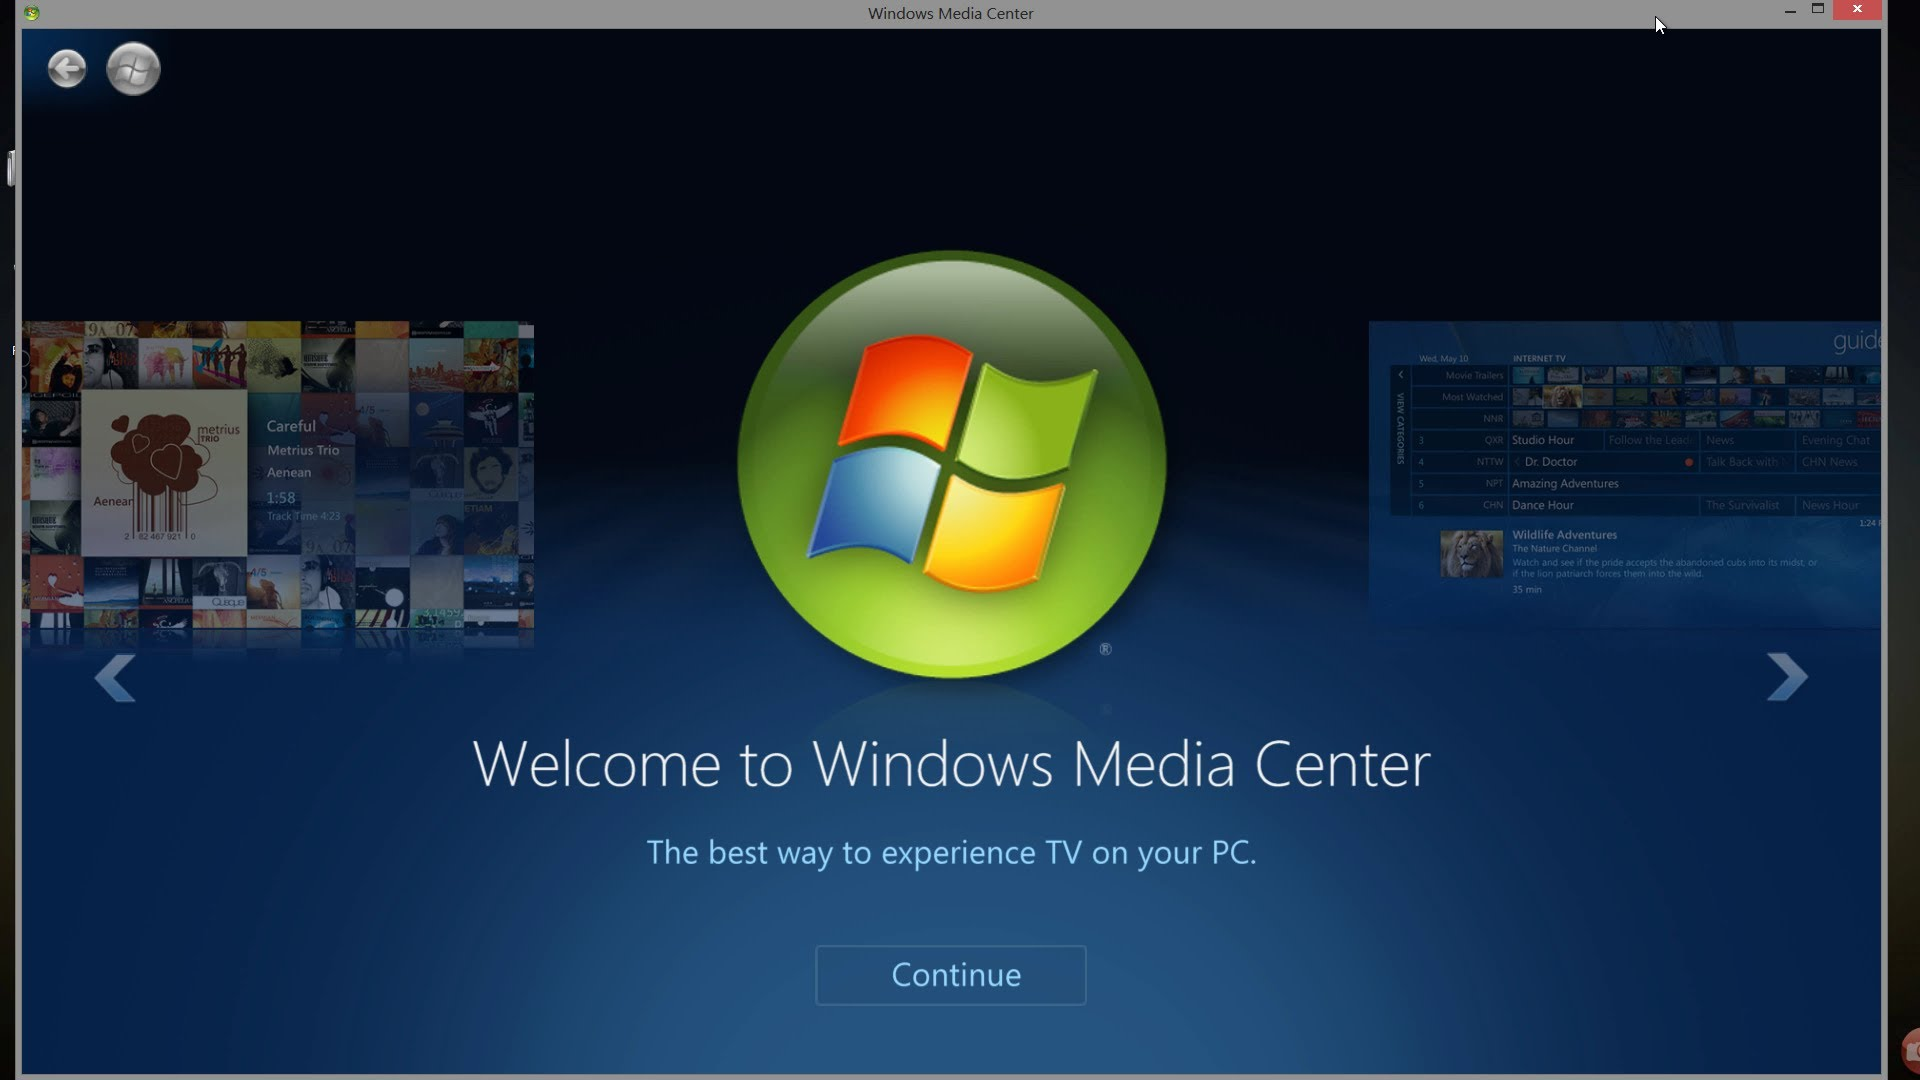 Windows media center removed in windows 10. This is how to install.